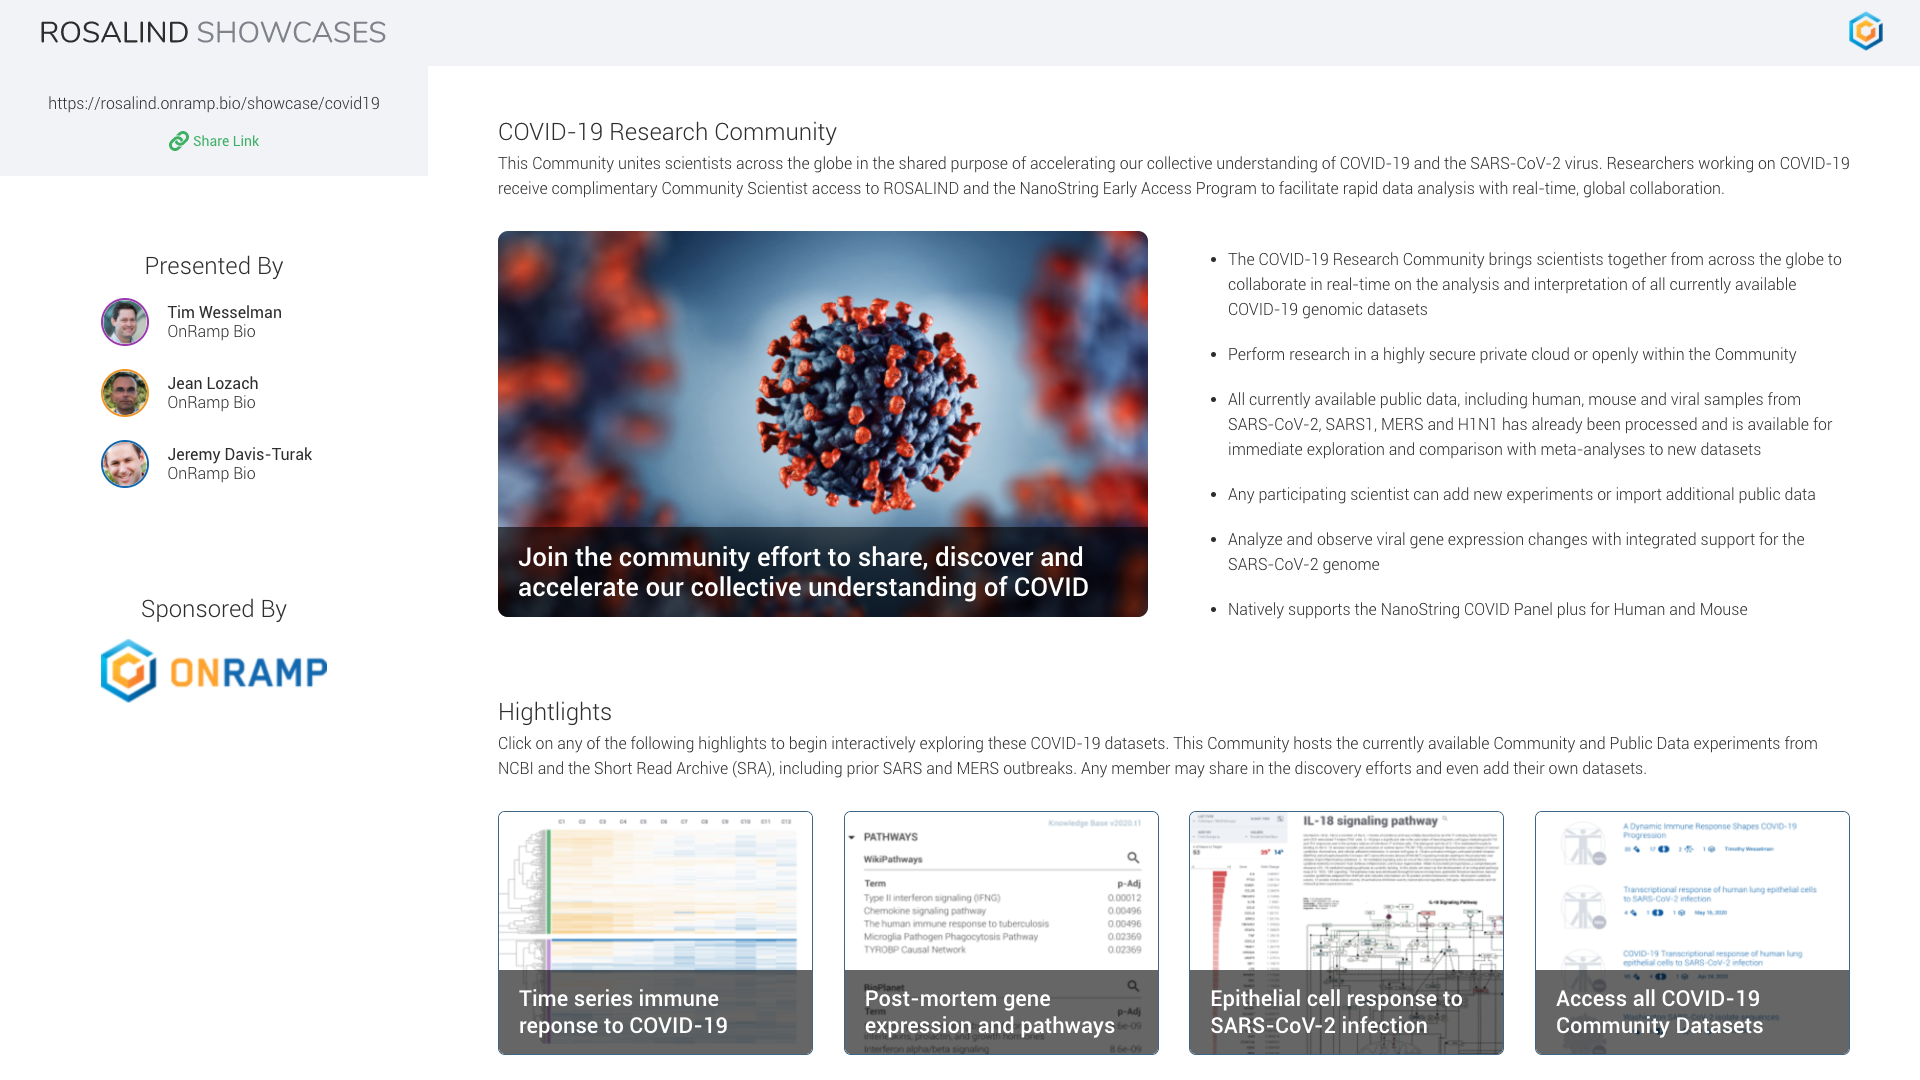 The COVID-19 Research Community on ROSALIND